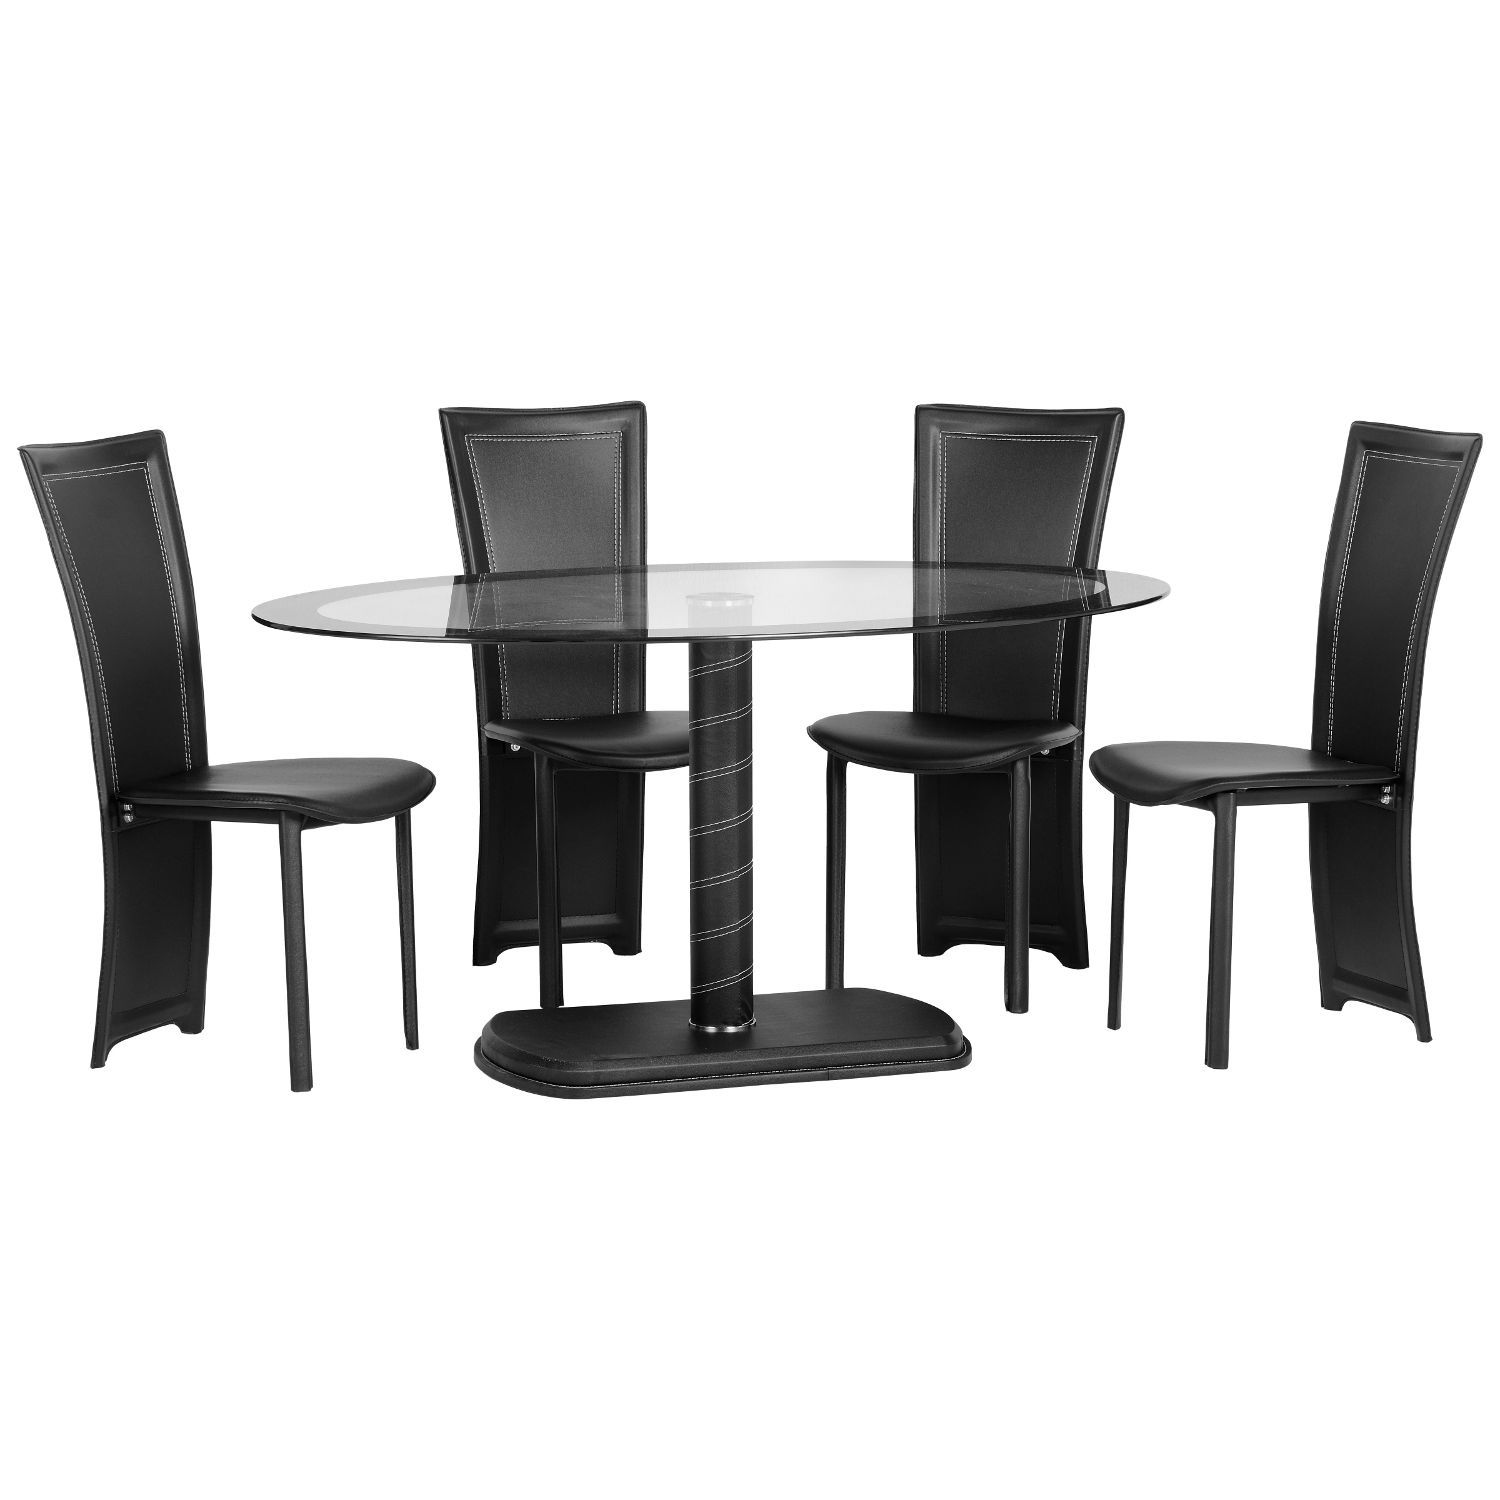 Cameo 4 Seater Oval Dining Set Next Day Delivery